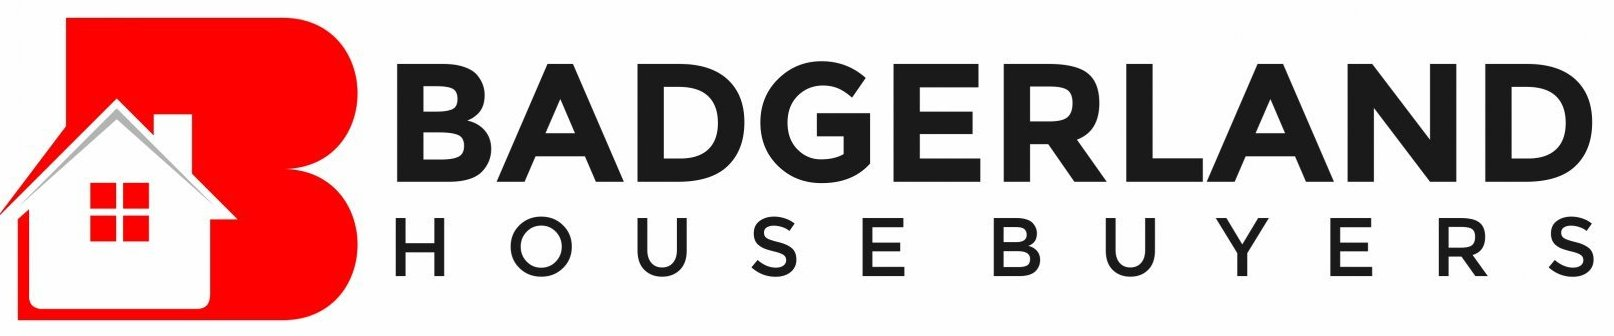 Badgerland House Buyers logo